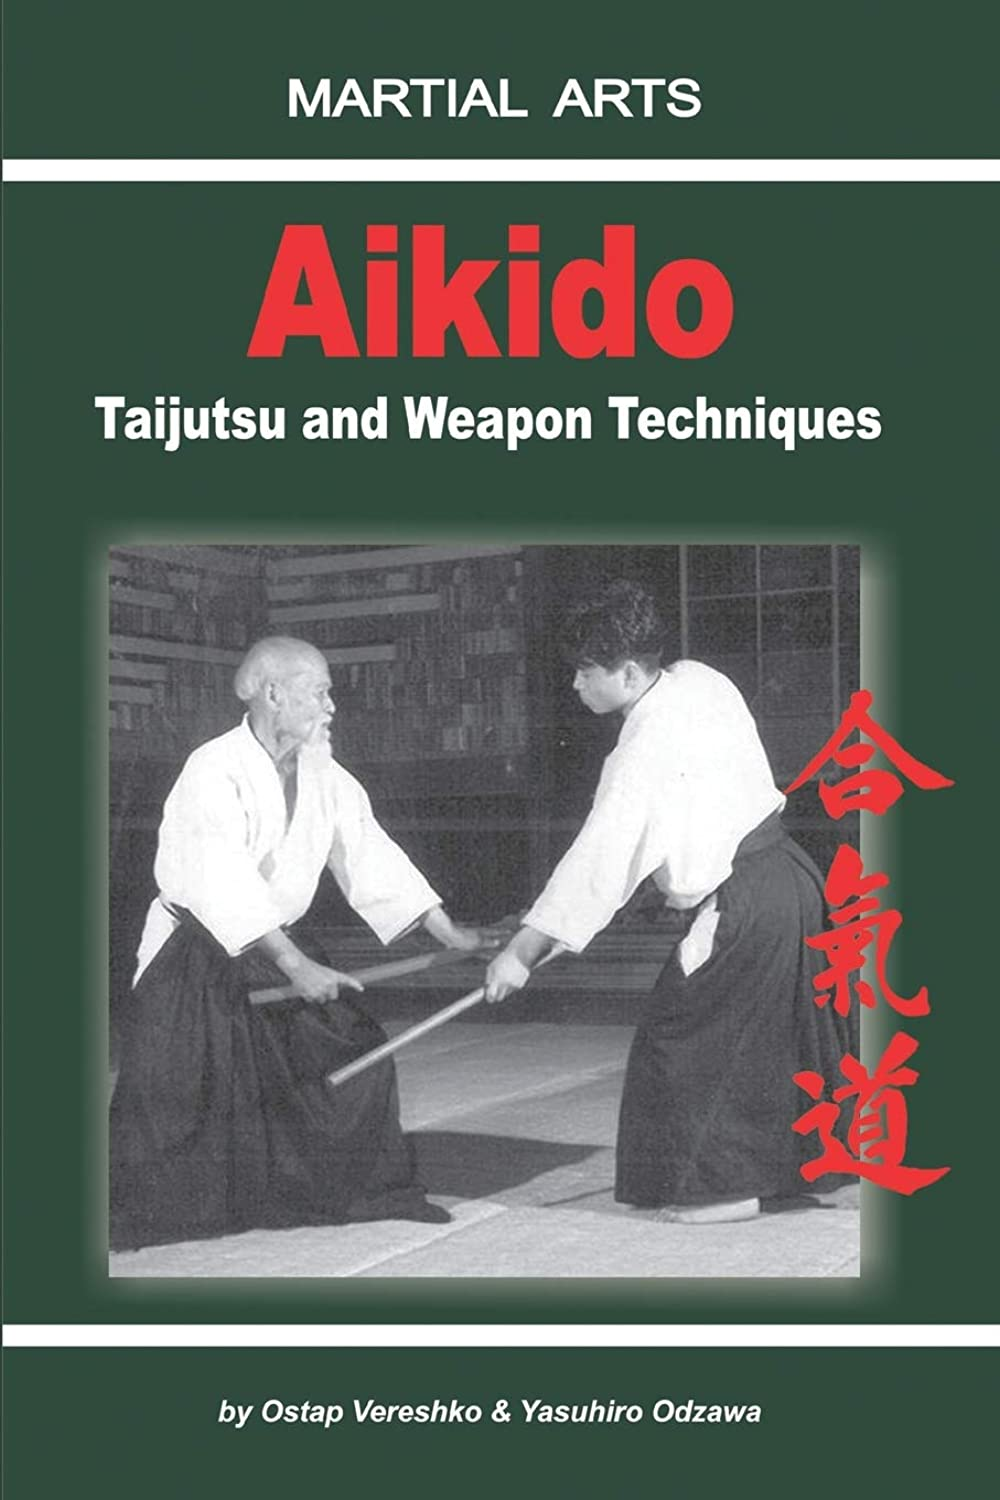 Aikido - Taijutsu and Weapon techniques